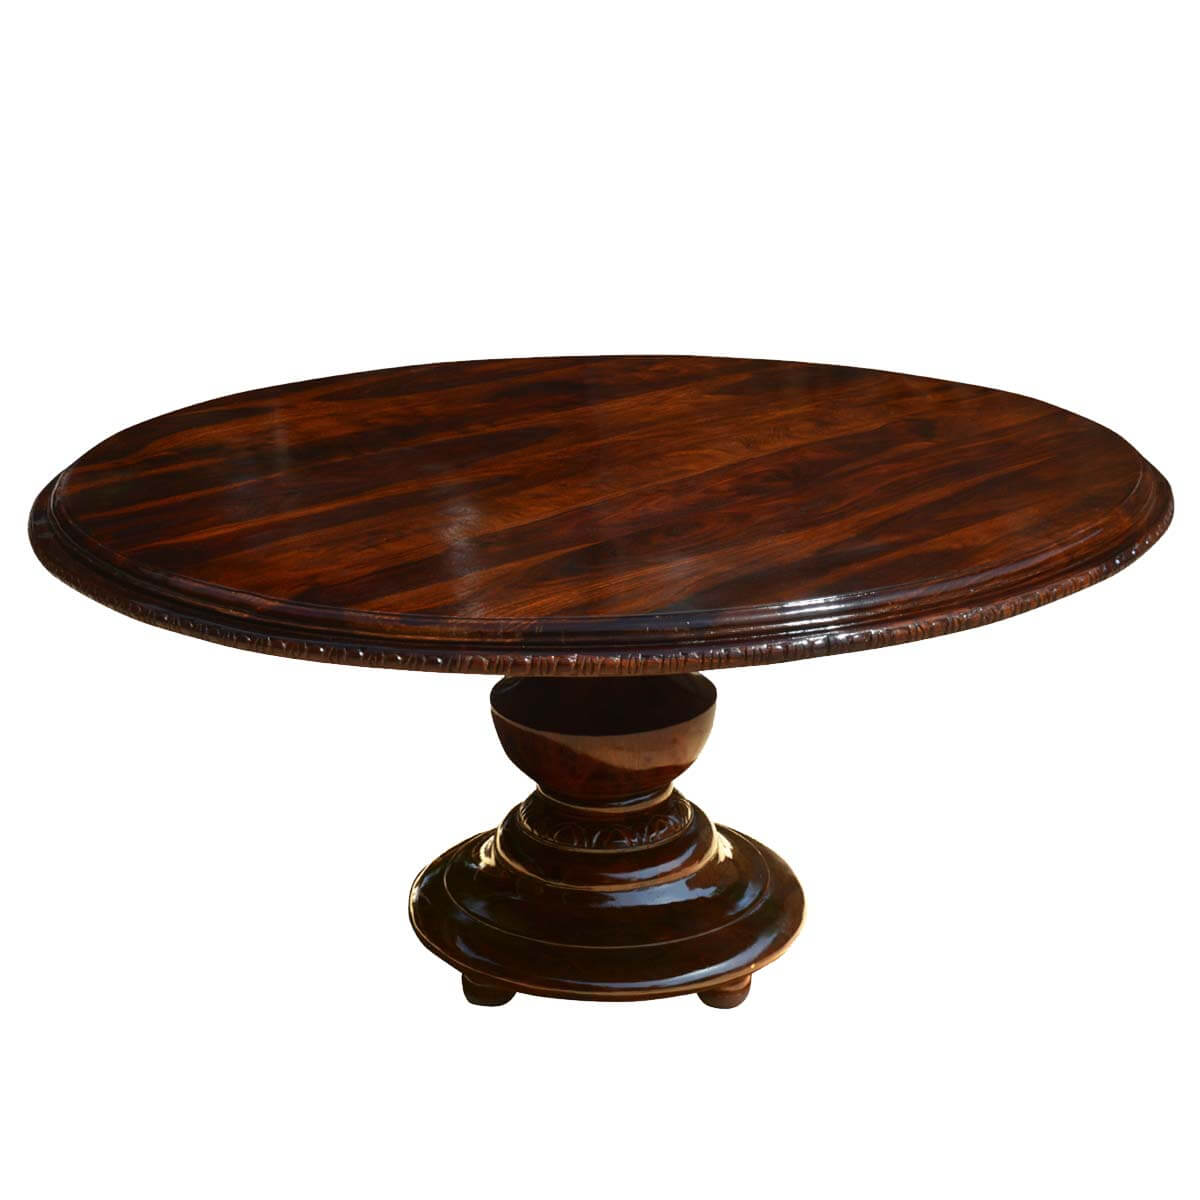 Rustic solid wood pedestal round dining table for Round pedestal dining table